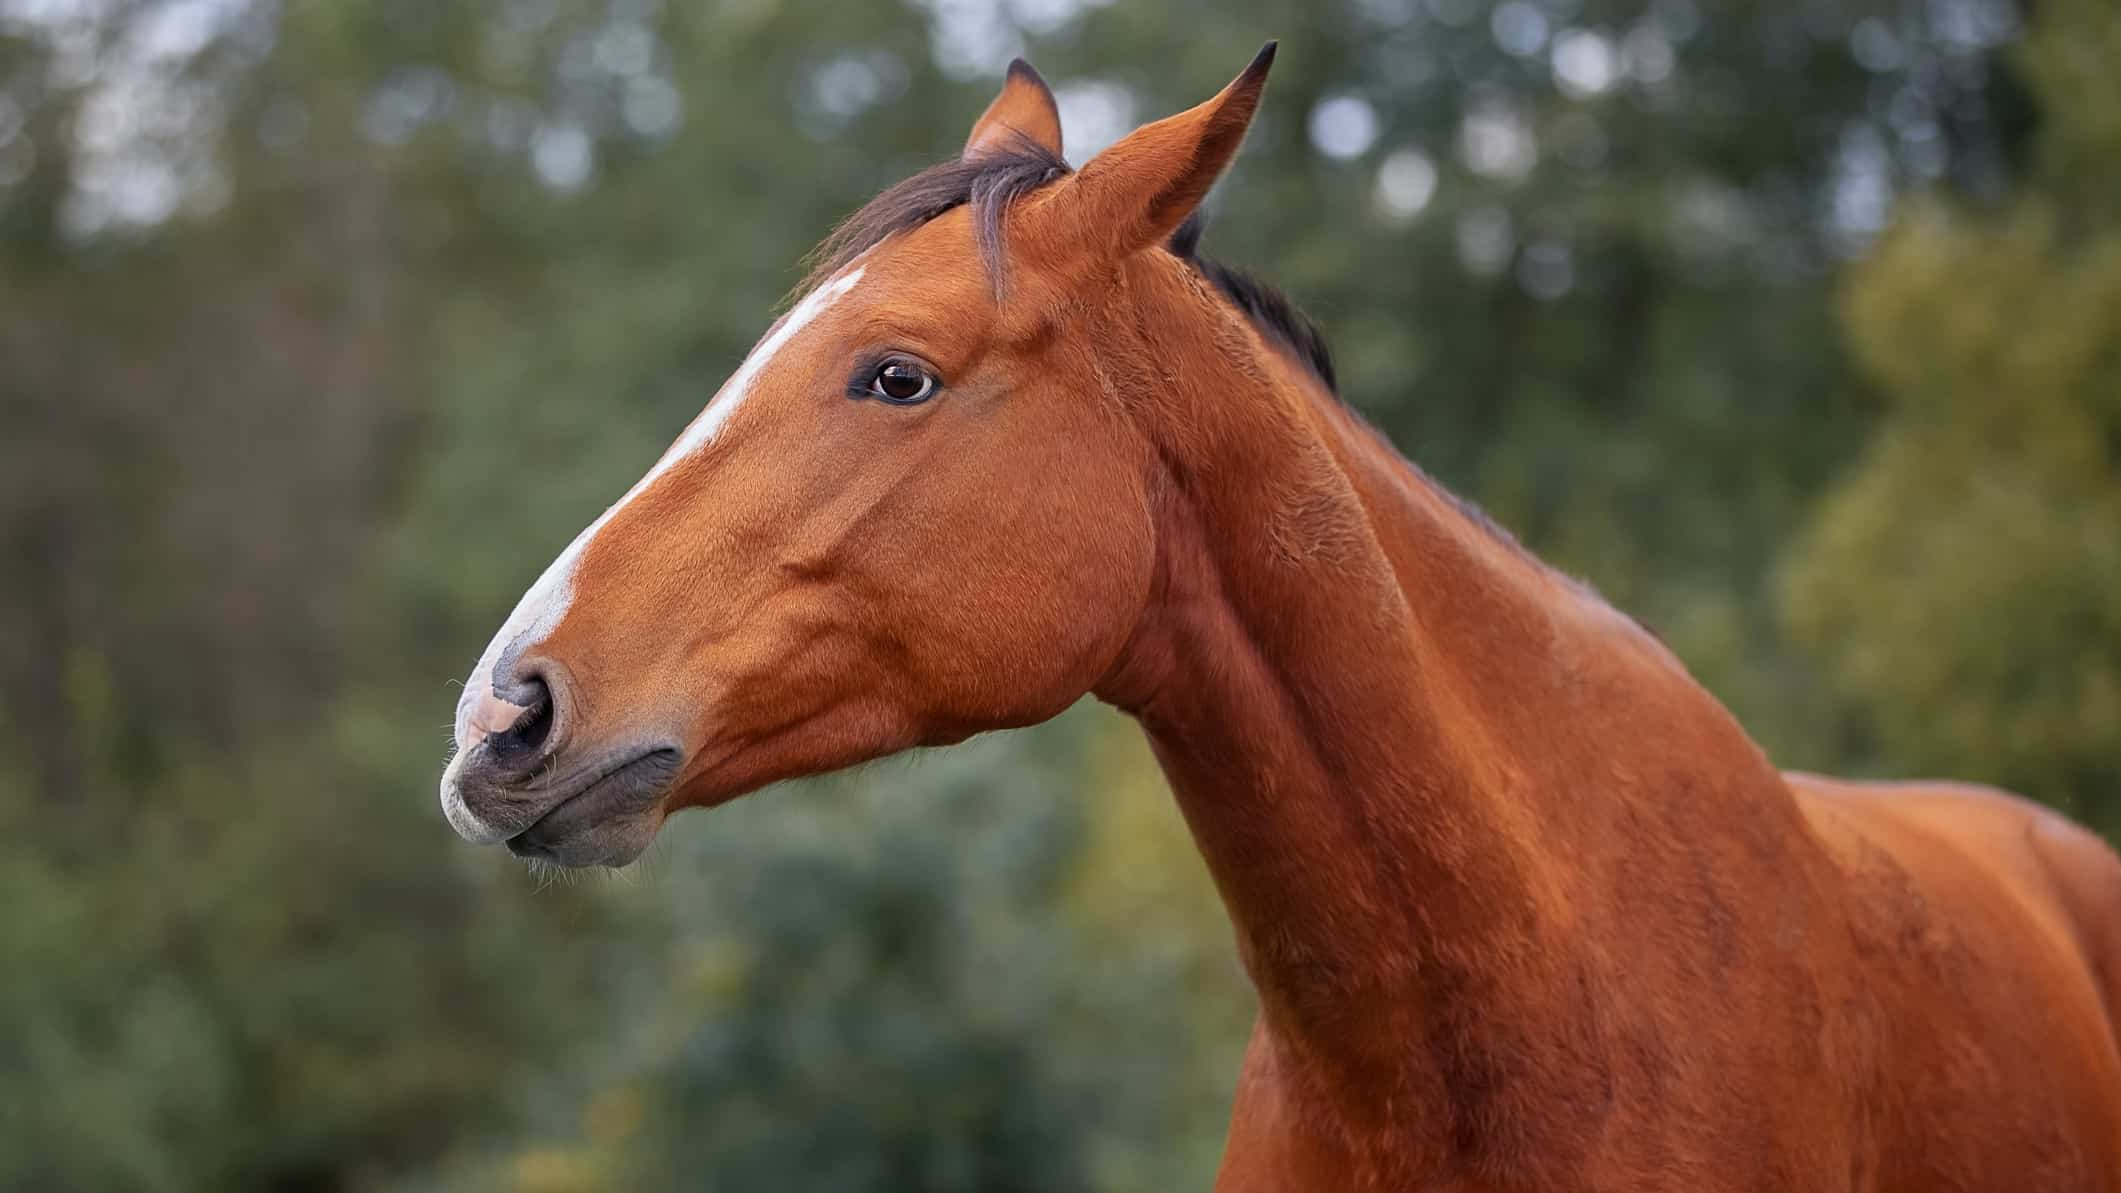 flat betmakers share price represented by sad looking horse